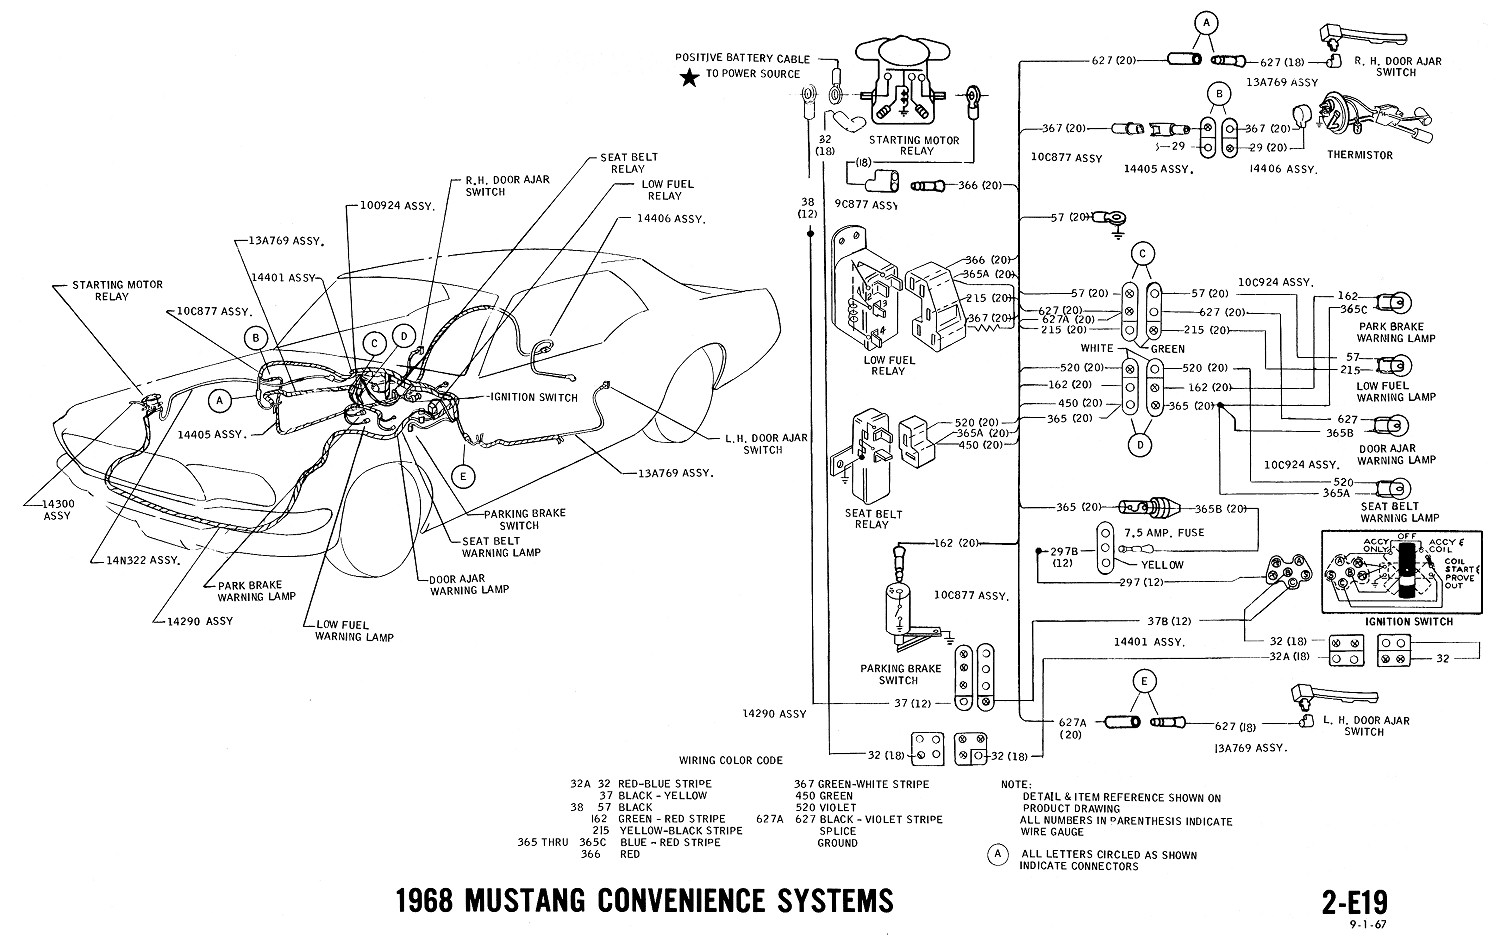 1968 mustang wiring diagrams evolving software convenience systems sciox Images